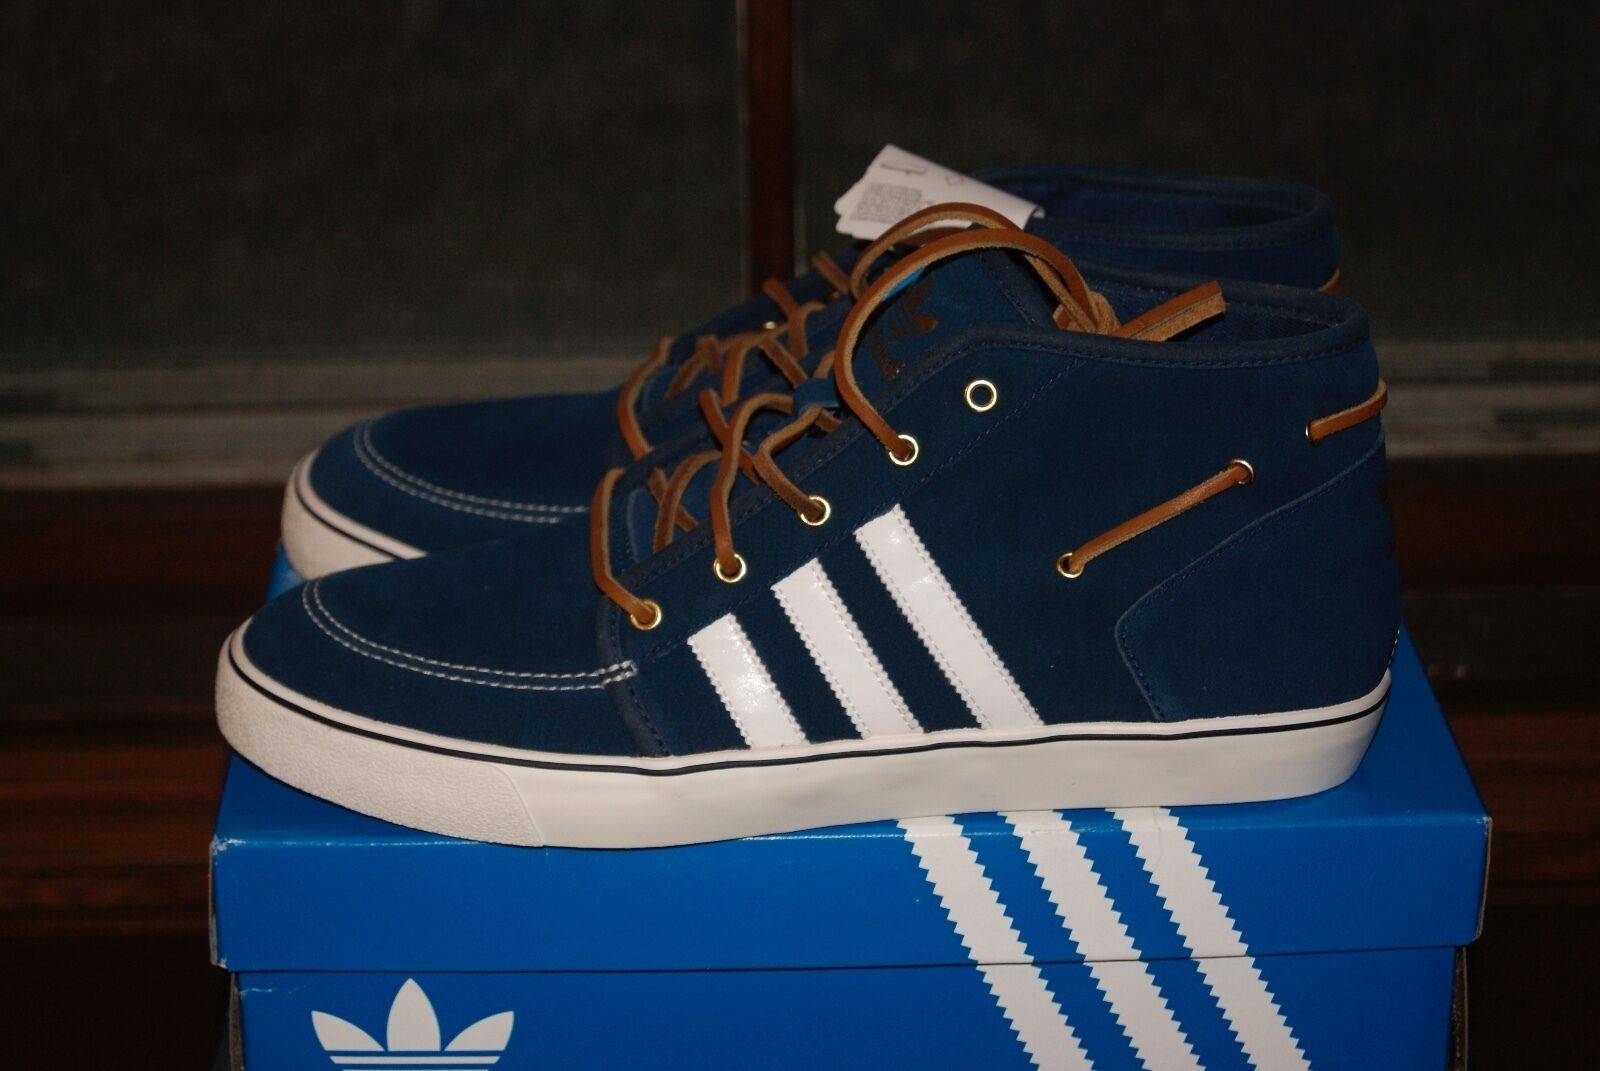 Mens Adidas Court Deck Vulc Mid bluee White Sz 7 or 11.5 or 12 or 13